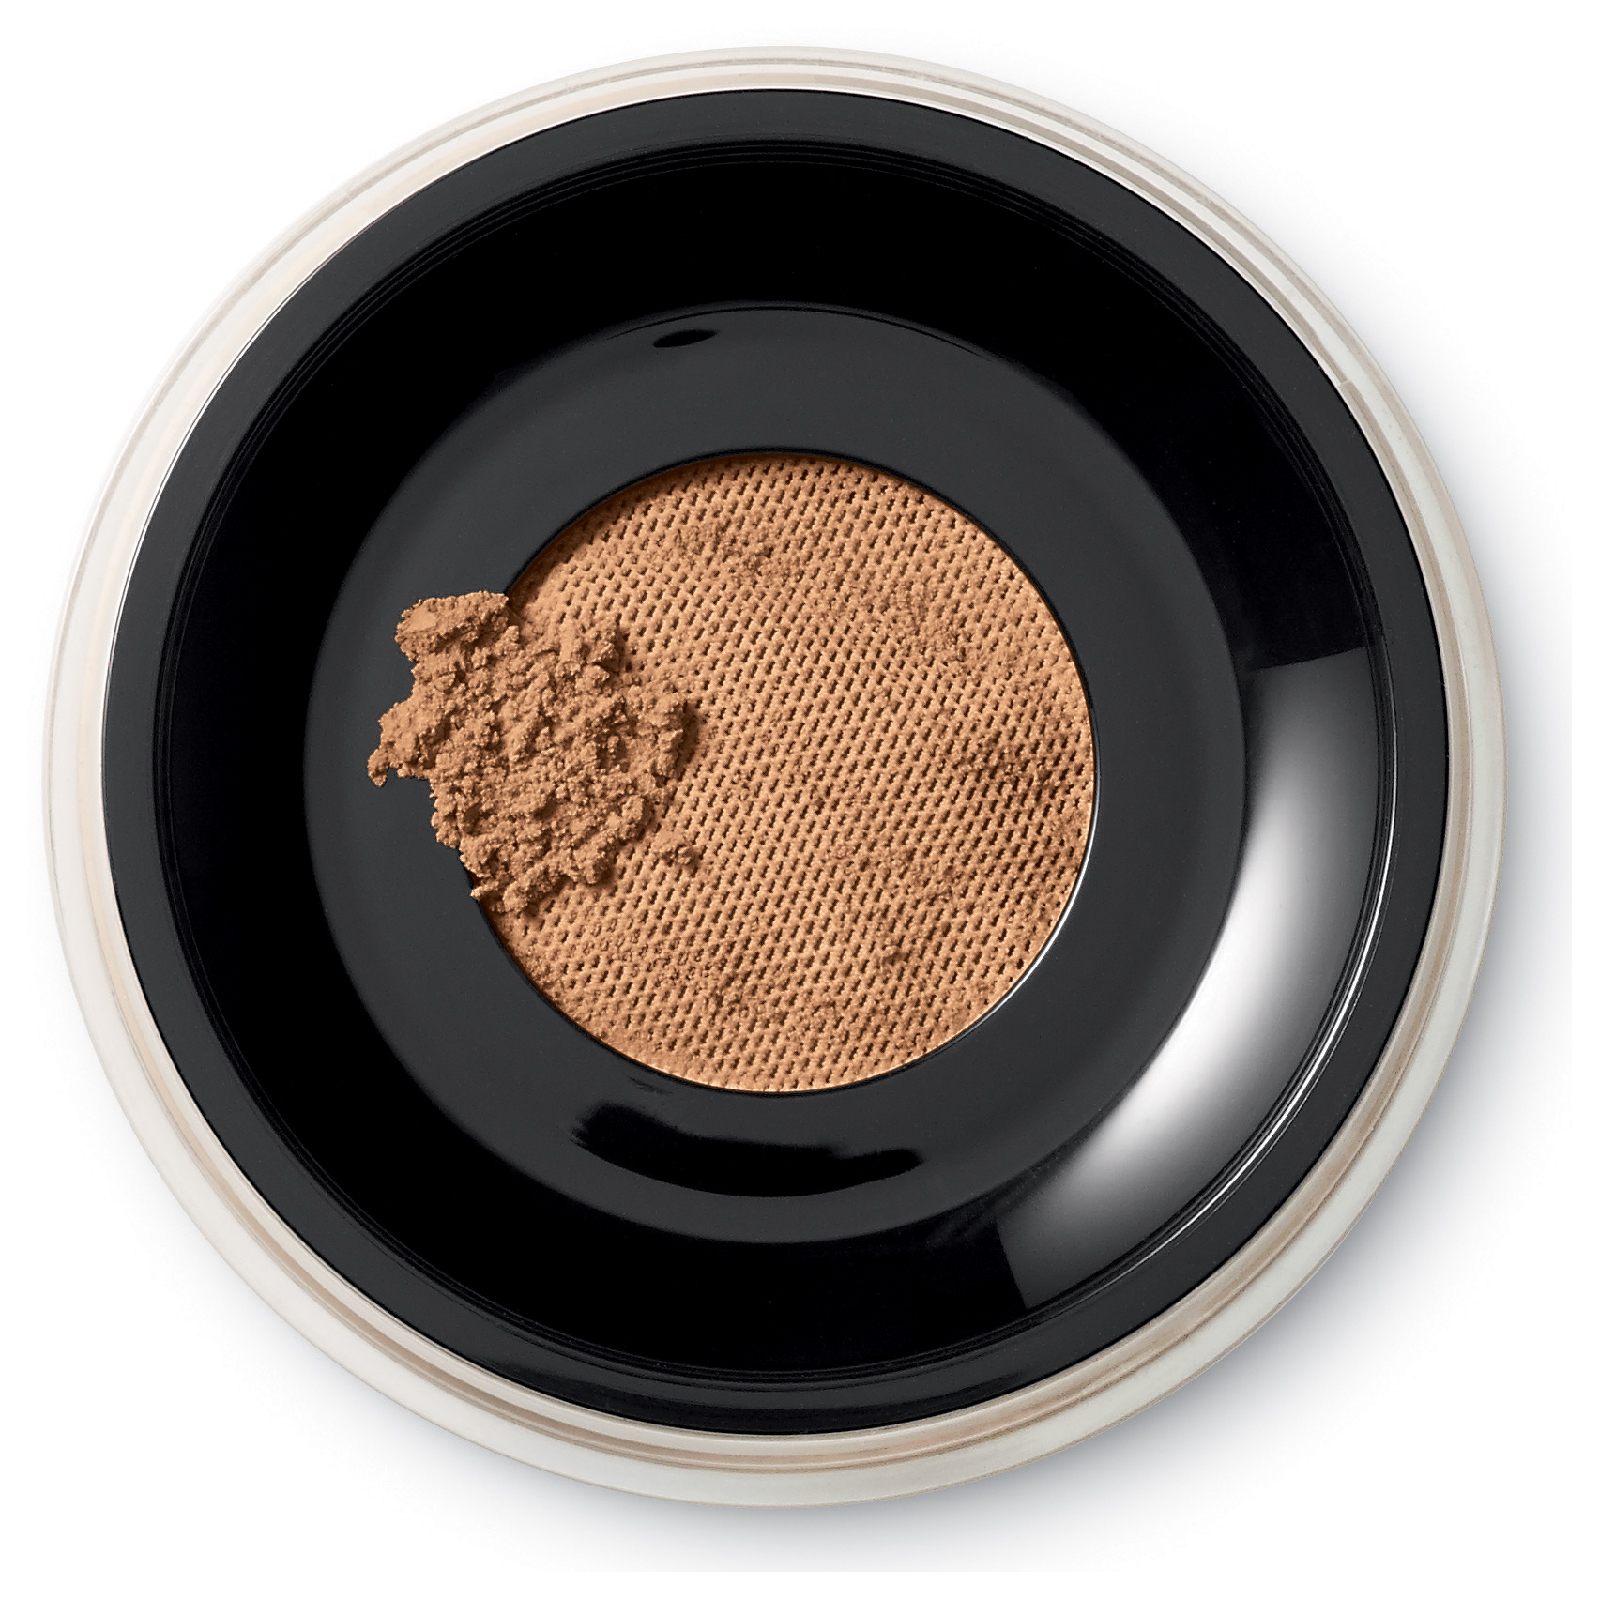 Bareminerals Blemish Remedy Foundation Clearly Free Shipping Ongkir Philips Dry Iron Hi 1172 Lookfantastic